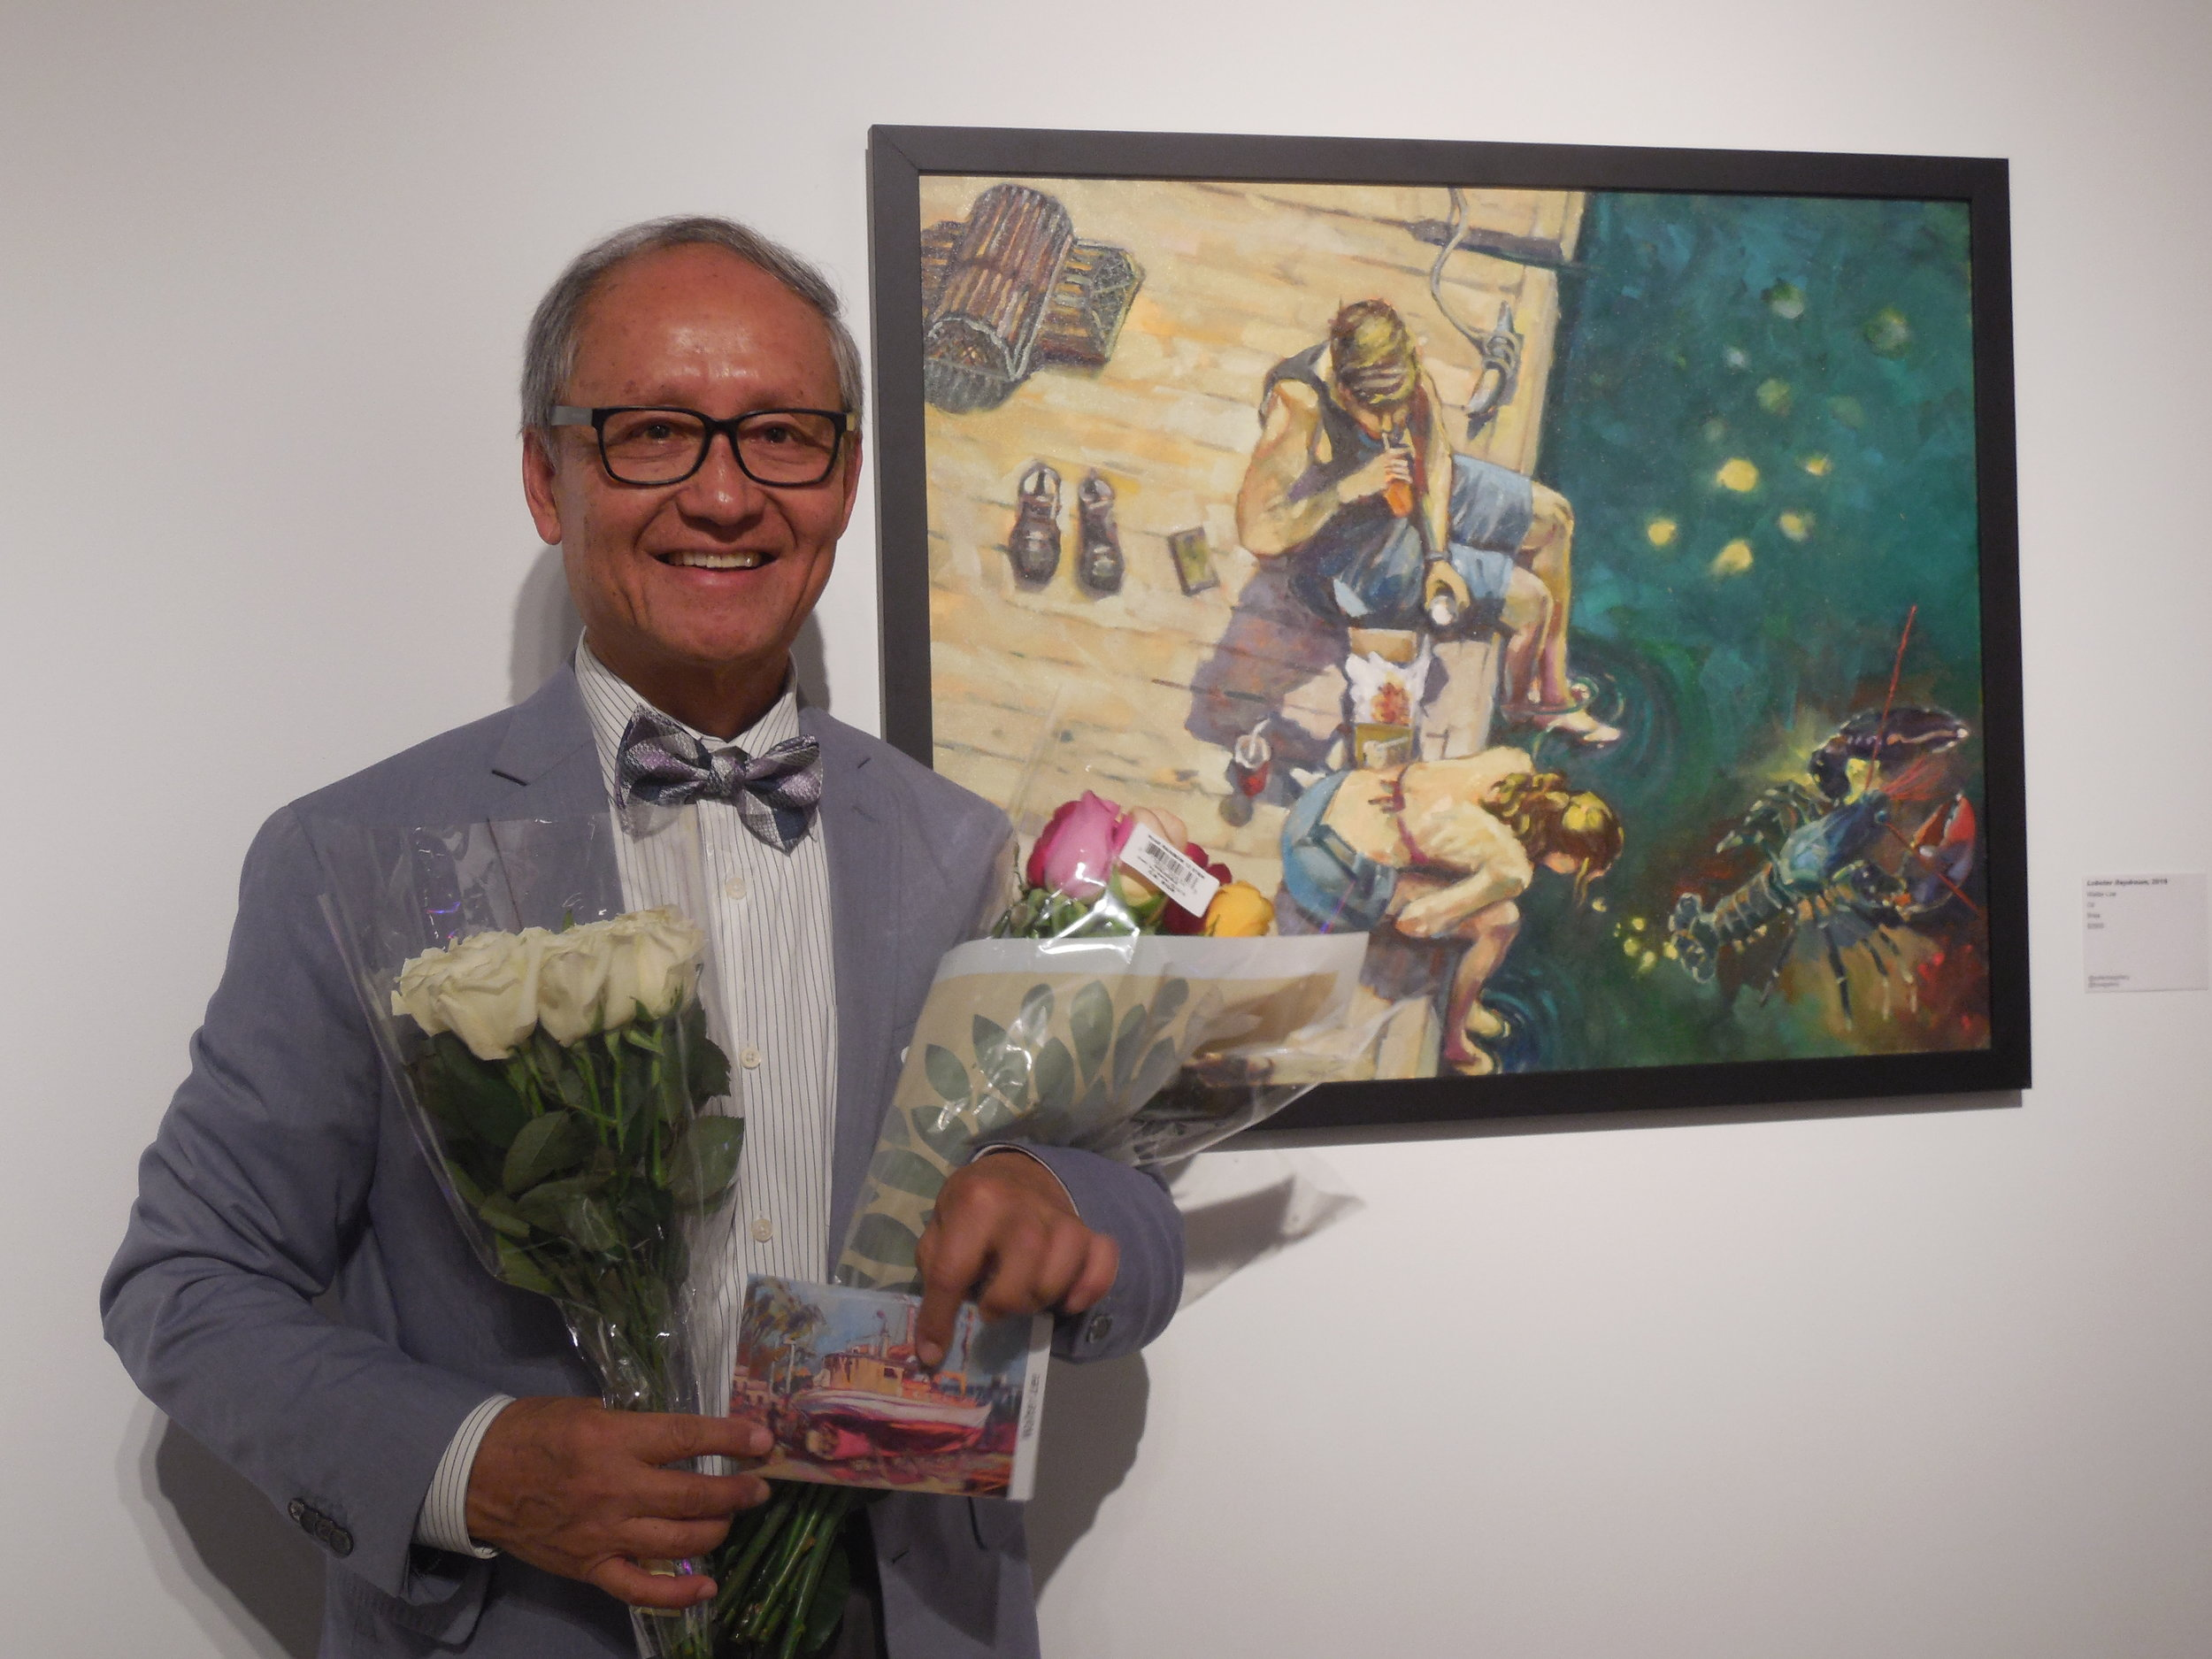 Walter at the Brea Gallery opening reception on May 4, 2019